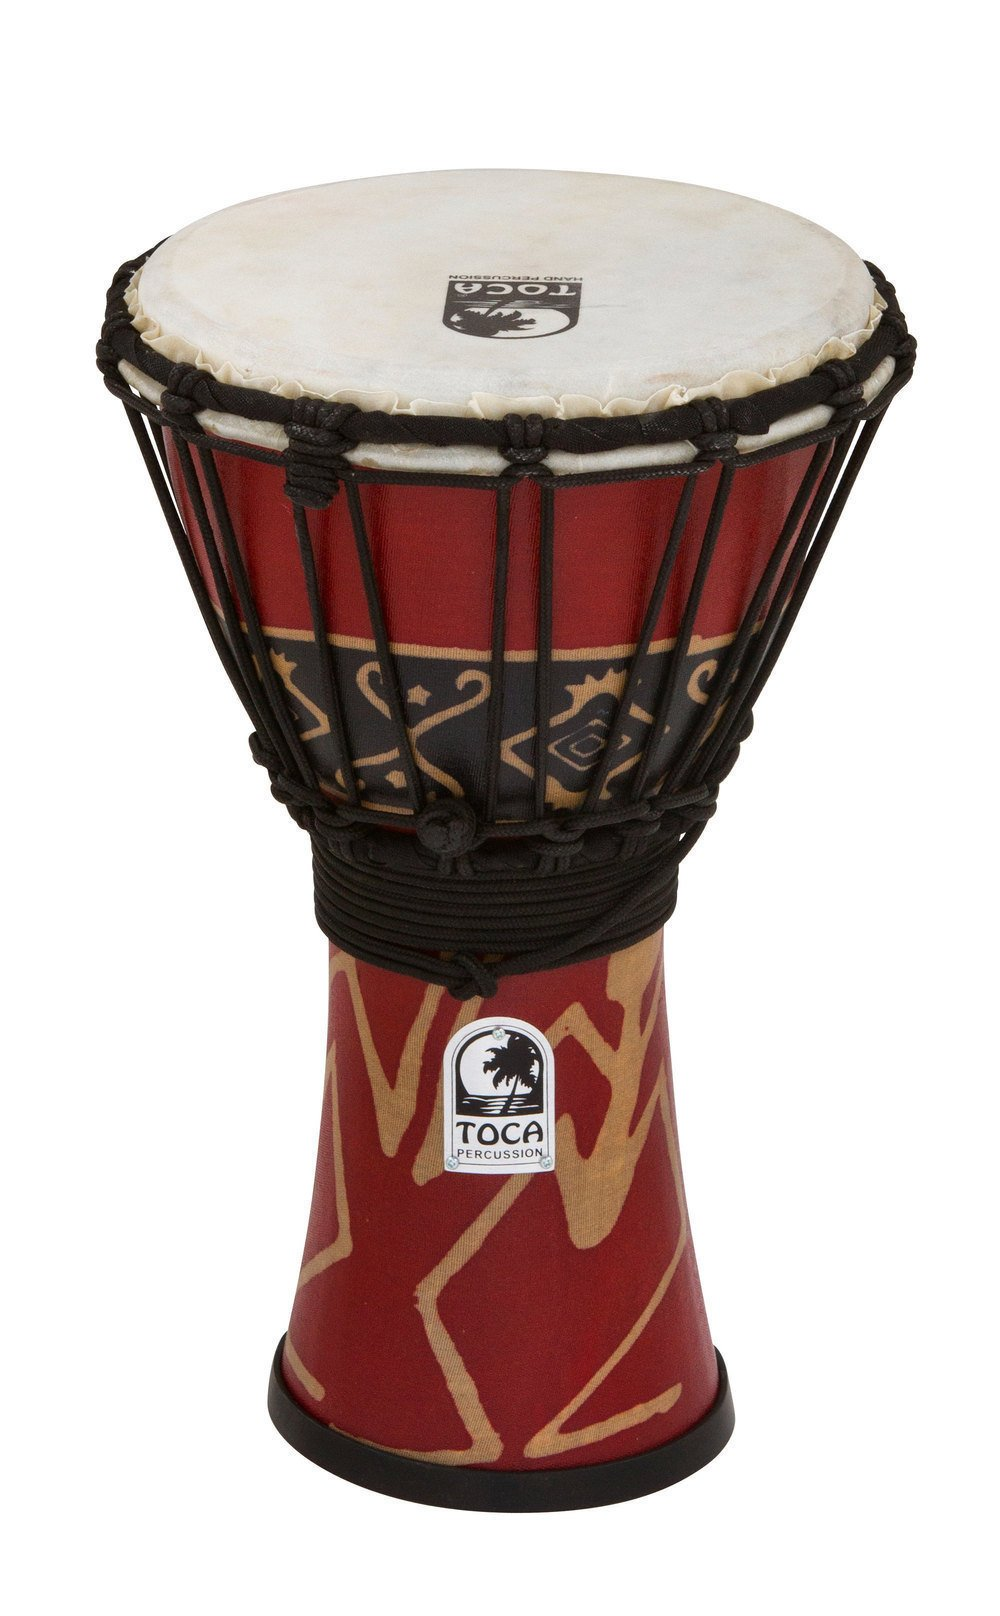 Toca SFDJ-7RP Freestyle Rope Tuned 7-Inch Djembe - Bali Red Finish